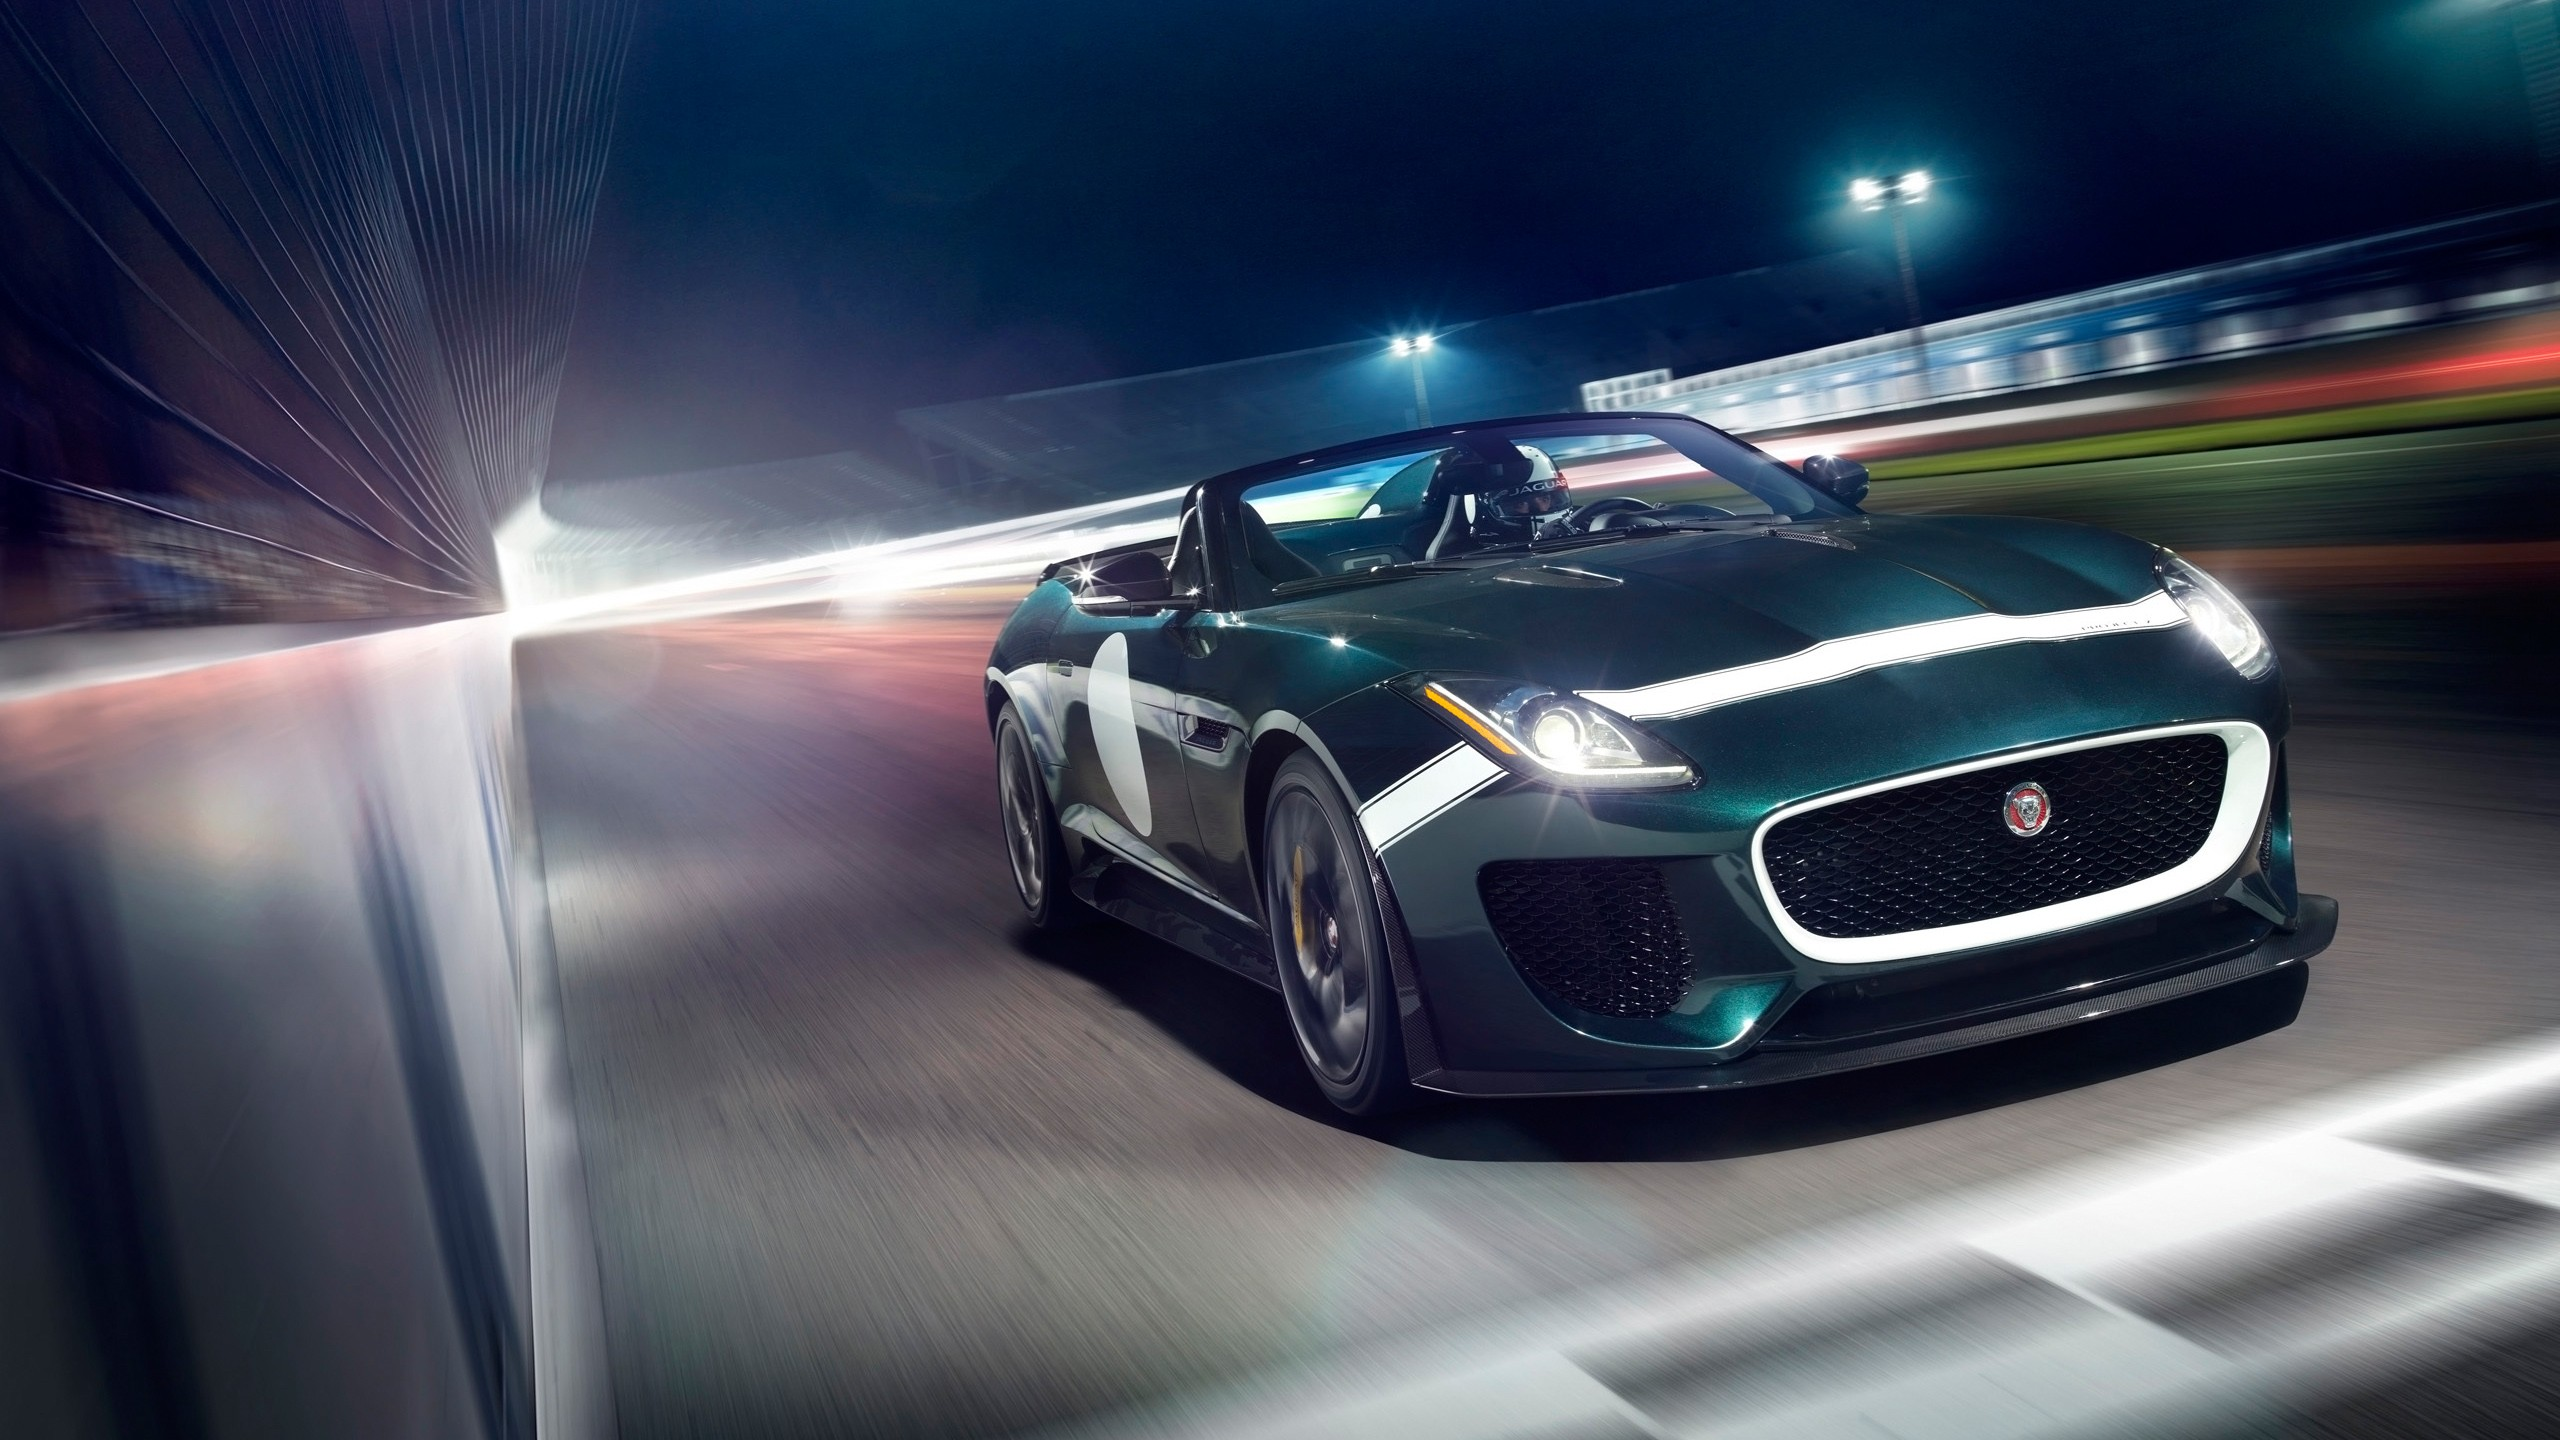 2015 Jaguar F Type Project 7 Wallpaper | HD Car Wallpapers ...